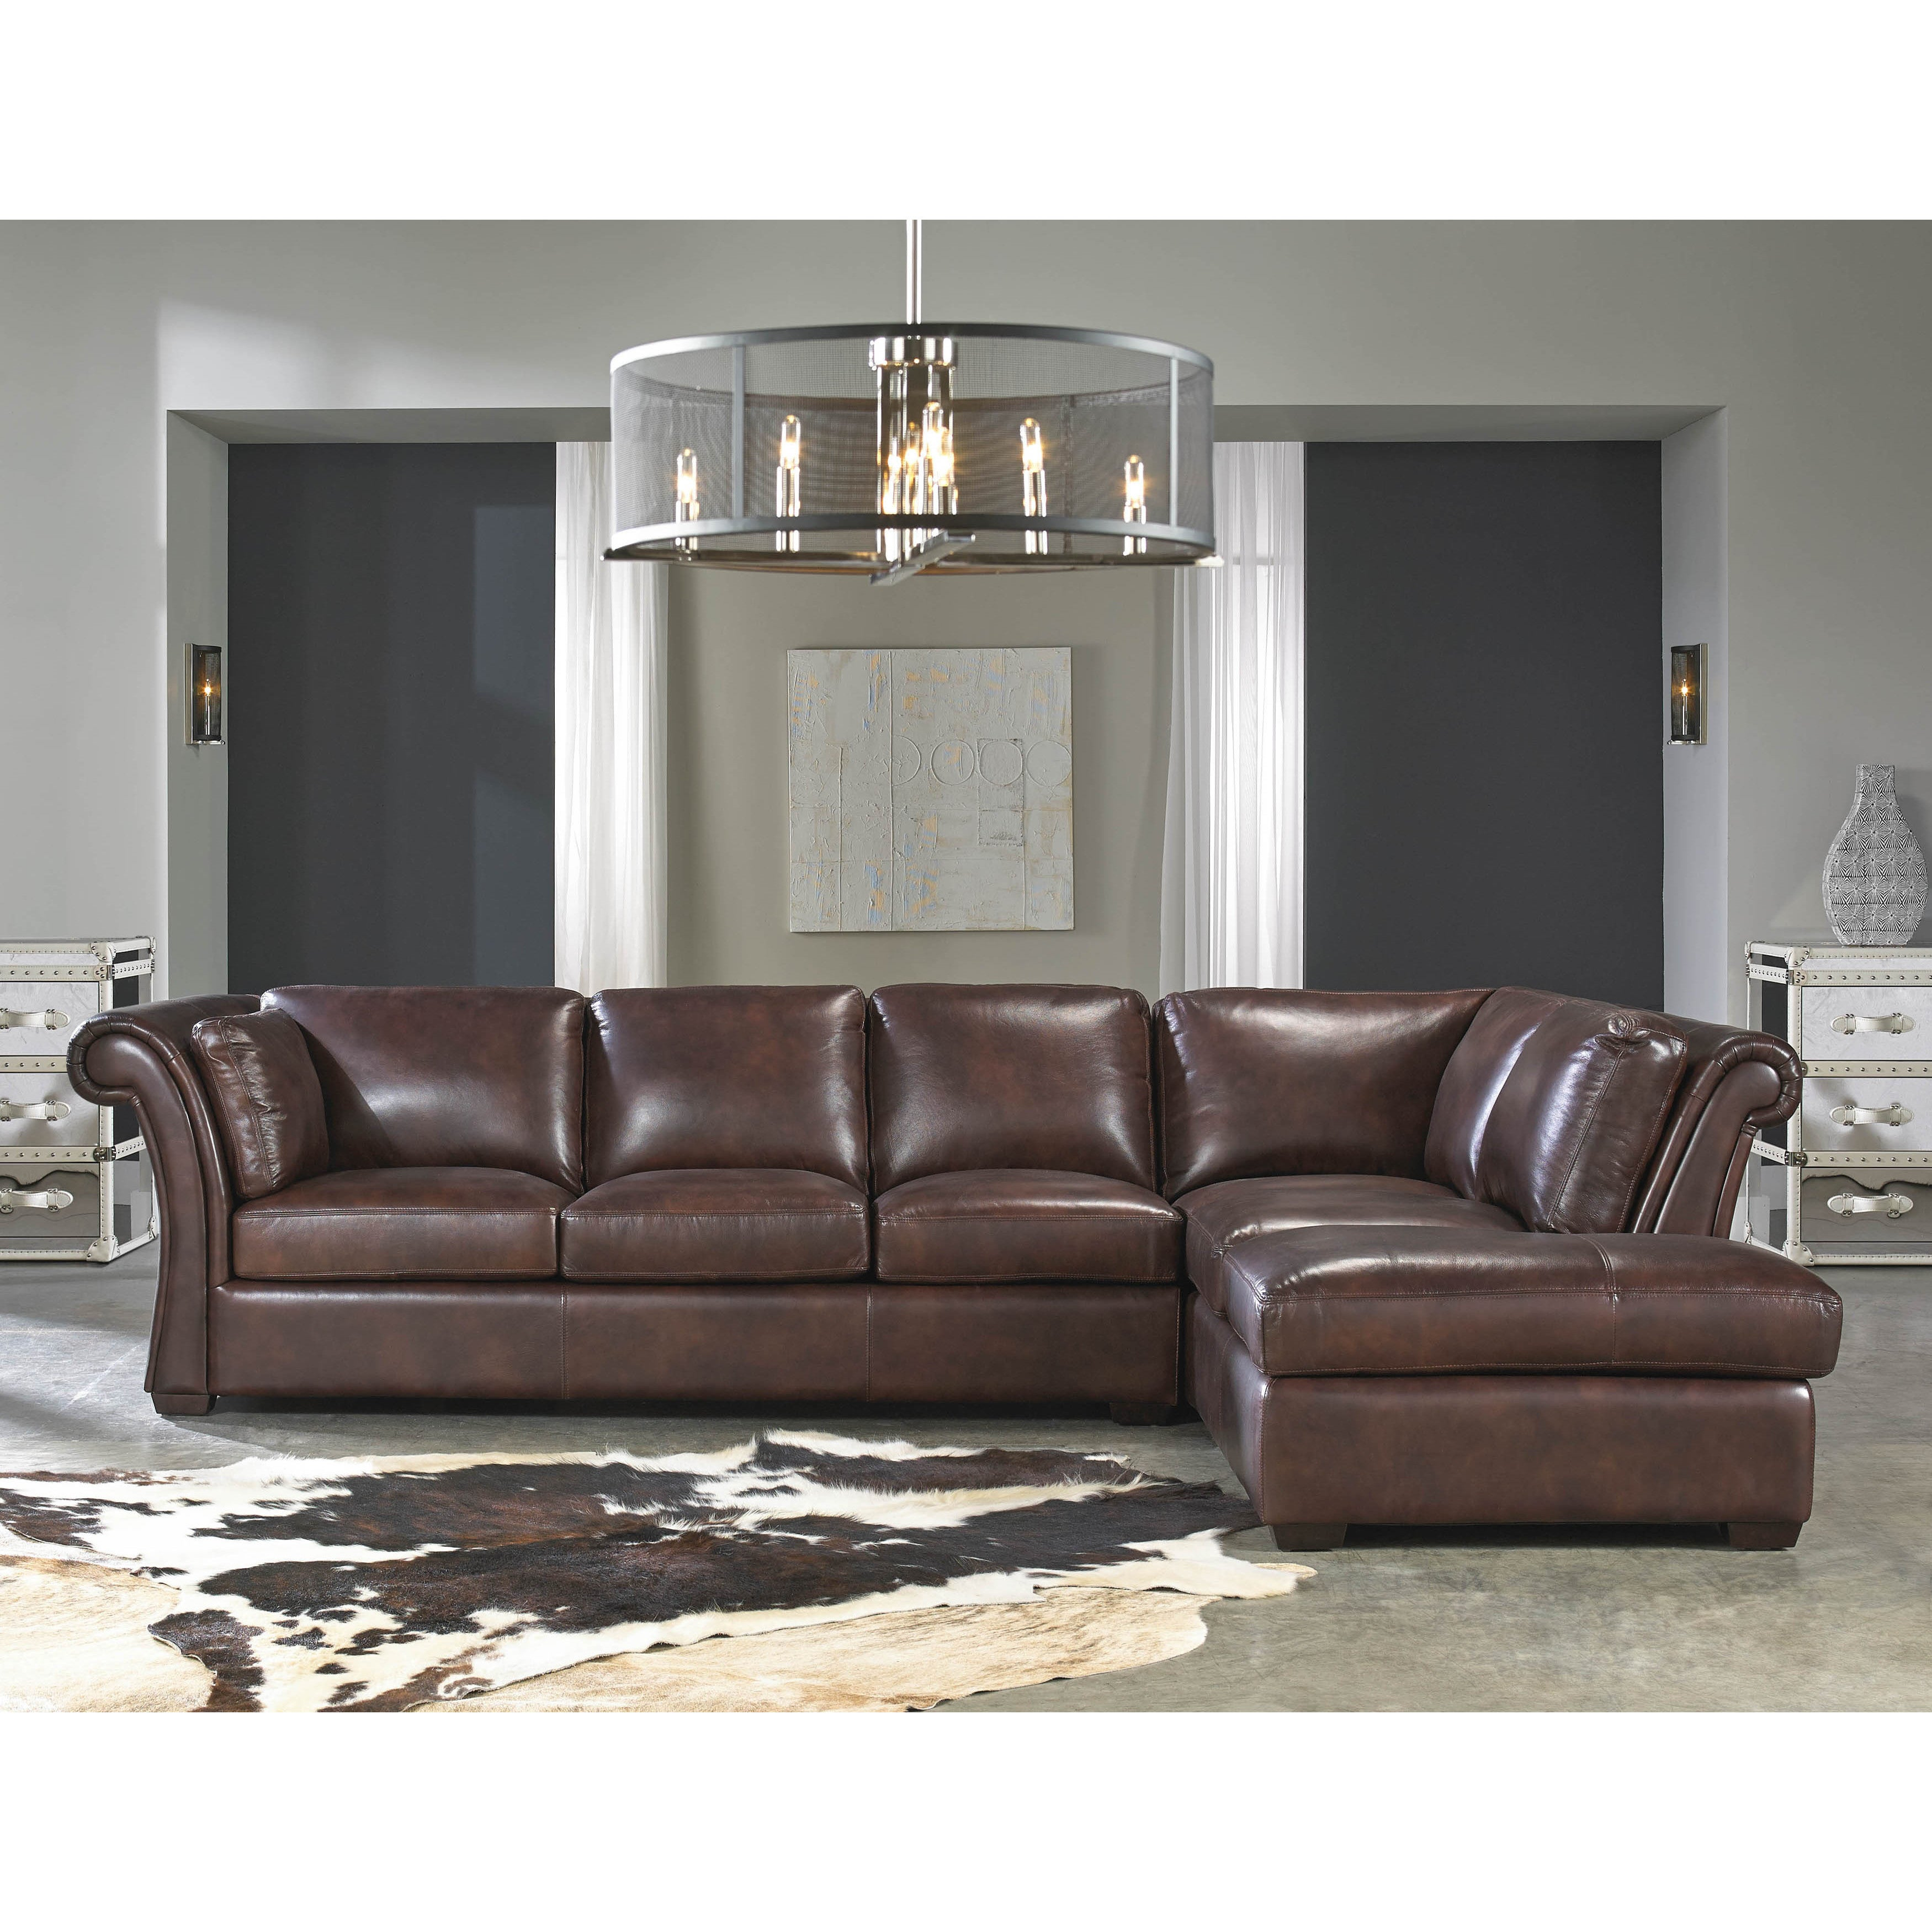 floor sectional rustic room costco metal leather furniture living country tripod info white ideas lamp entrin couch